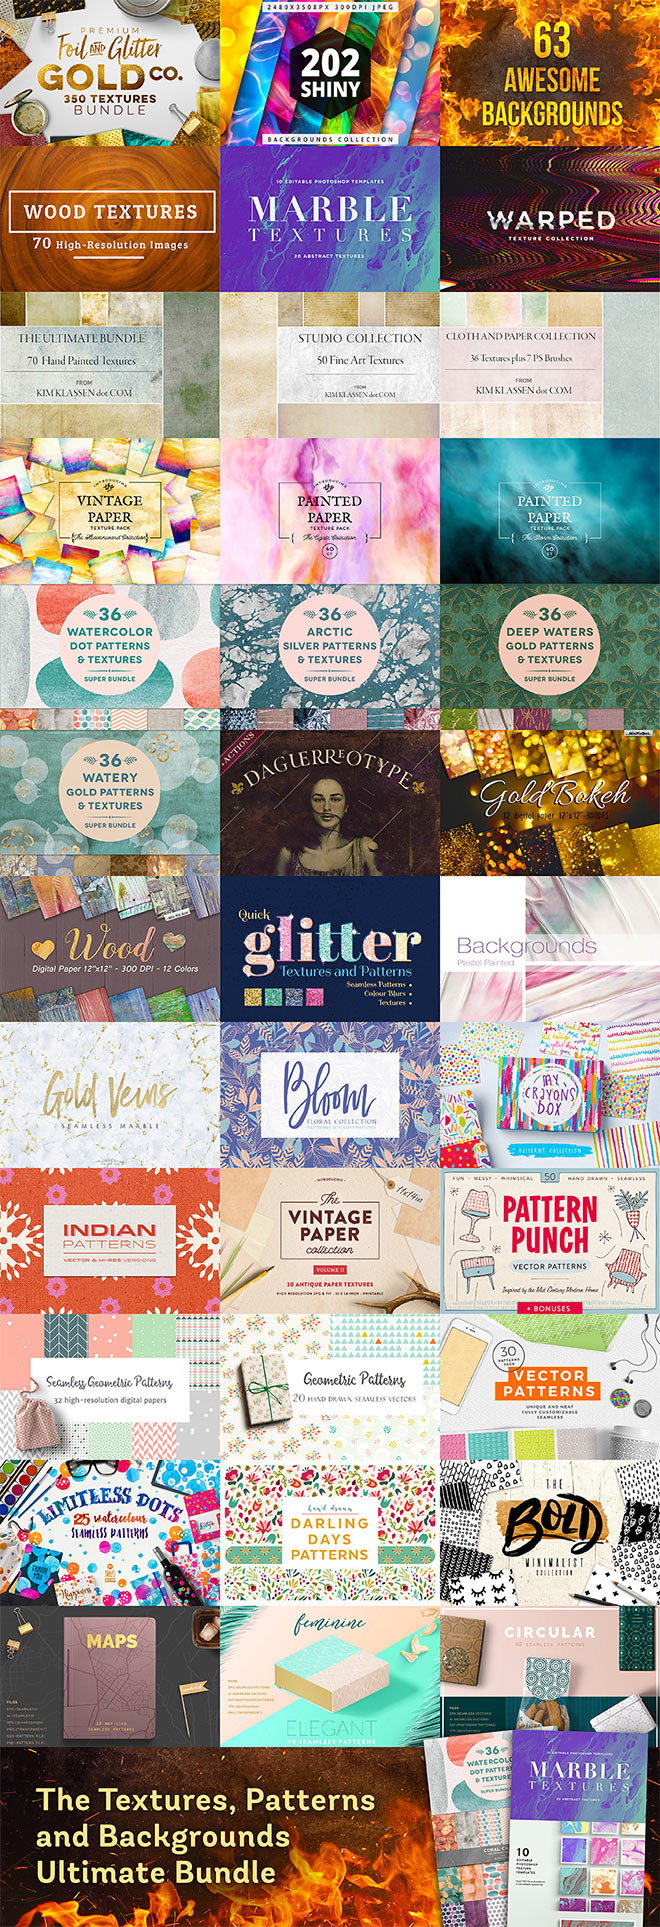 The Ultimate Textures, Patterns and Backgrounds Bundle